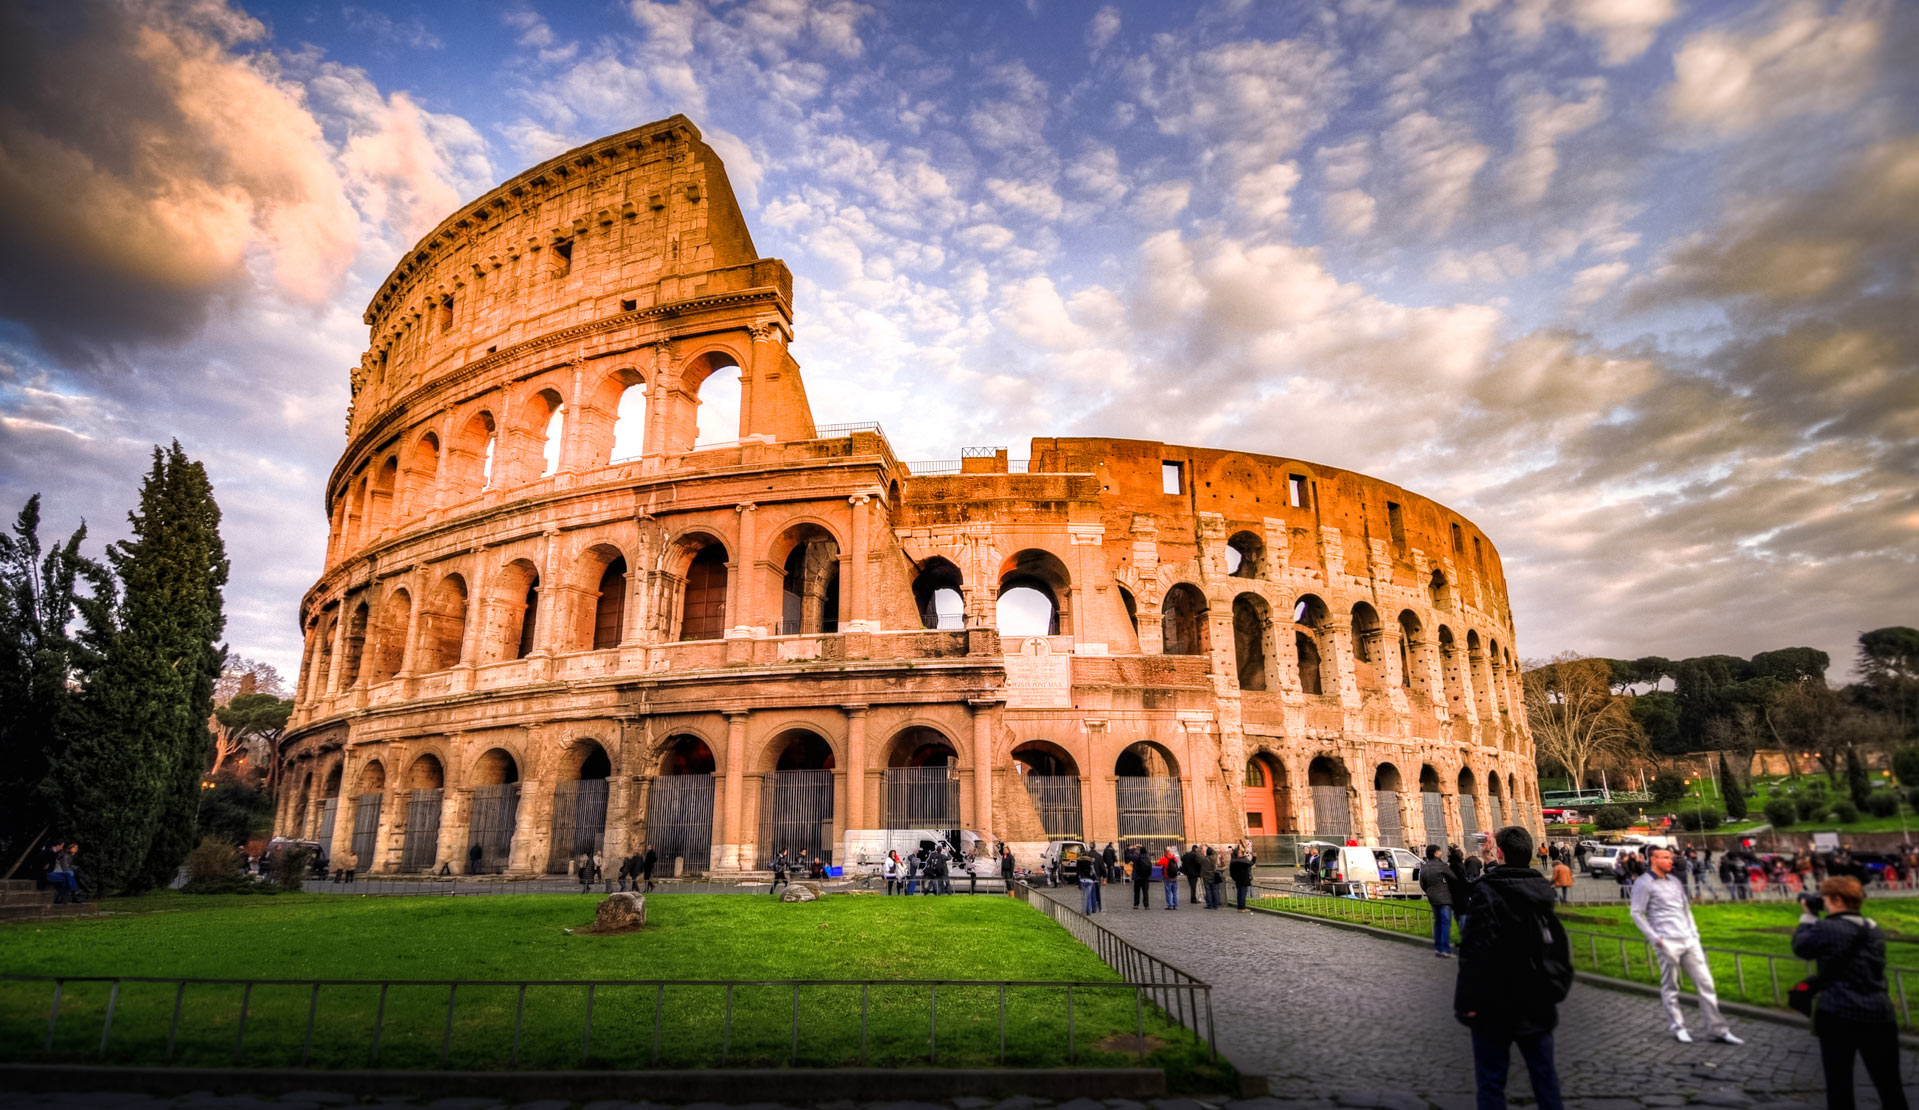 Rome travel guide for first-time visitors - Best Places to Visit in Europe - planningforeurope.com (2)